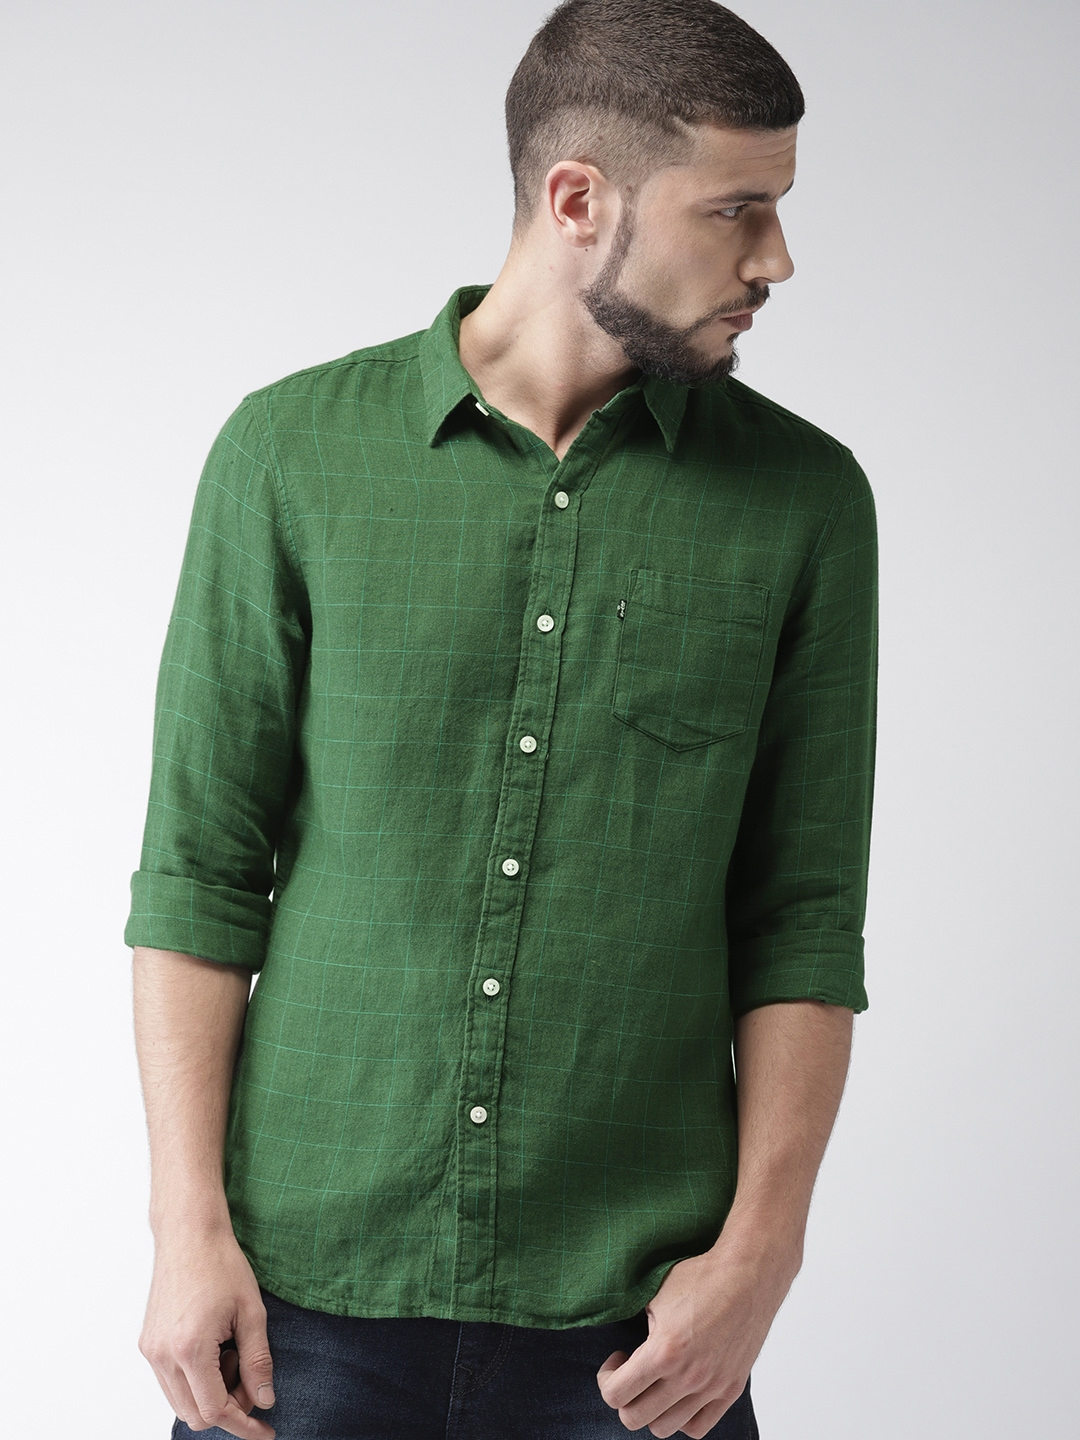 b0f65f1dca Buy Levis Men Green Trim Slim Fit Checked Casual Linen Shirt ...